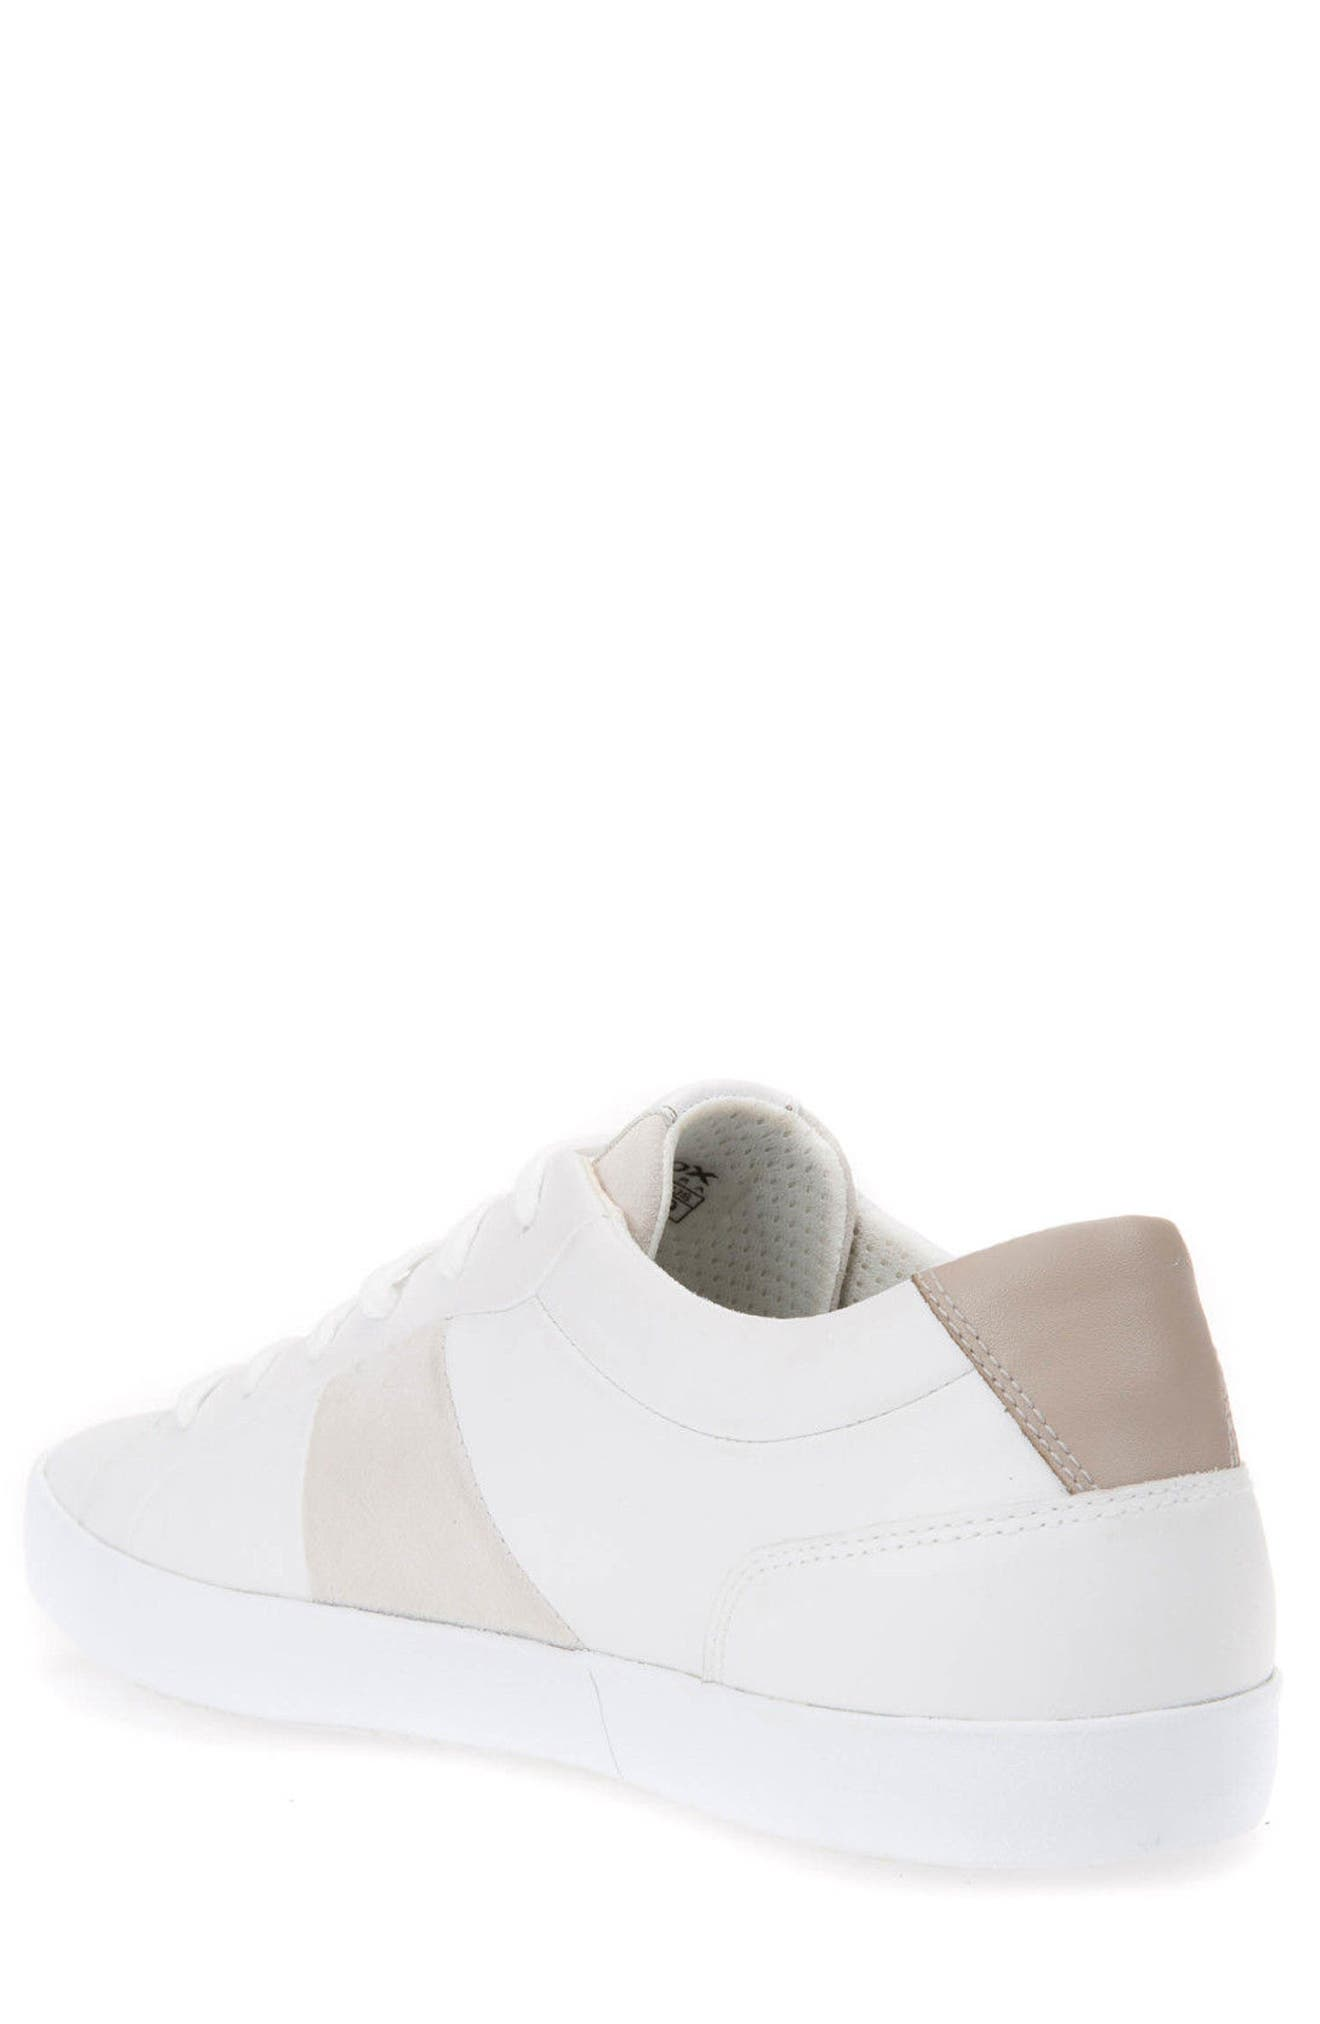 Smart 78 Sneaker,                             Alternate thumbnail 2, color,                             White/ Papyrus Leather